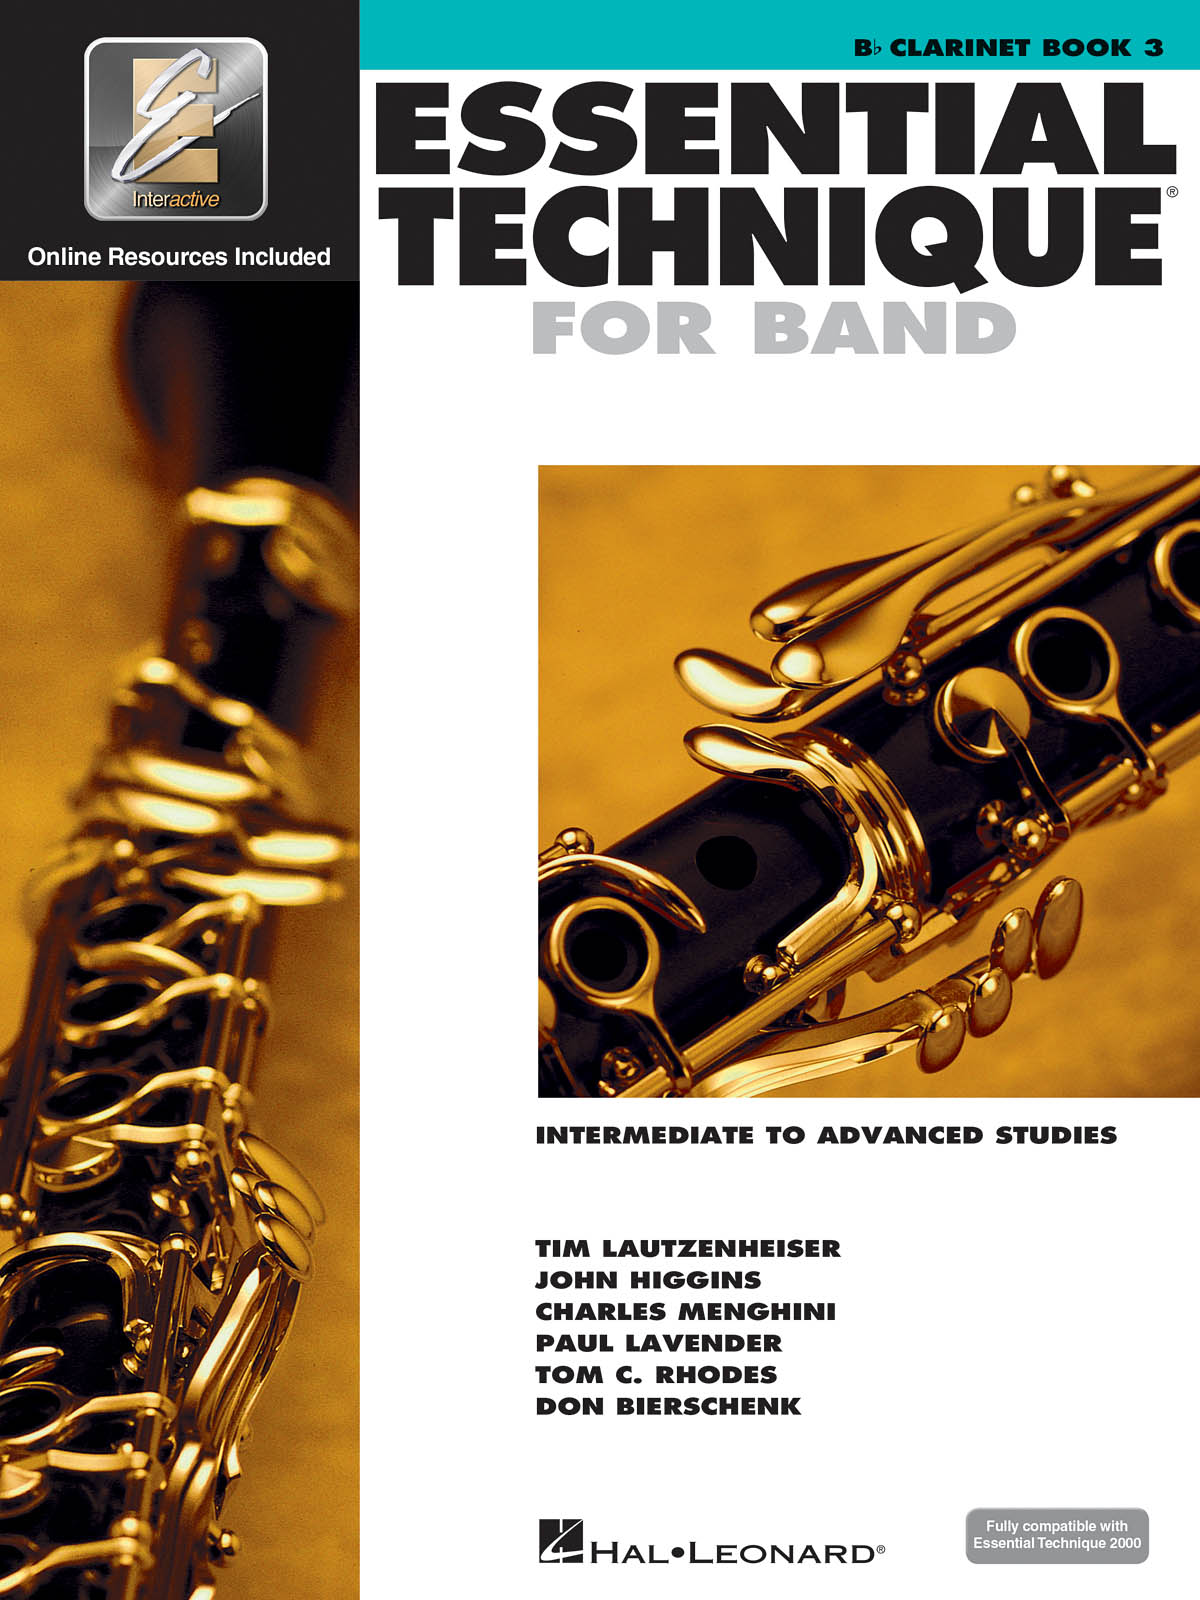 Essential Elements for Band - Book 3 Bass Clarinet: Clarinet Solo: Book & Audio